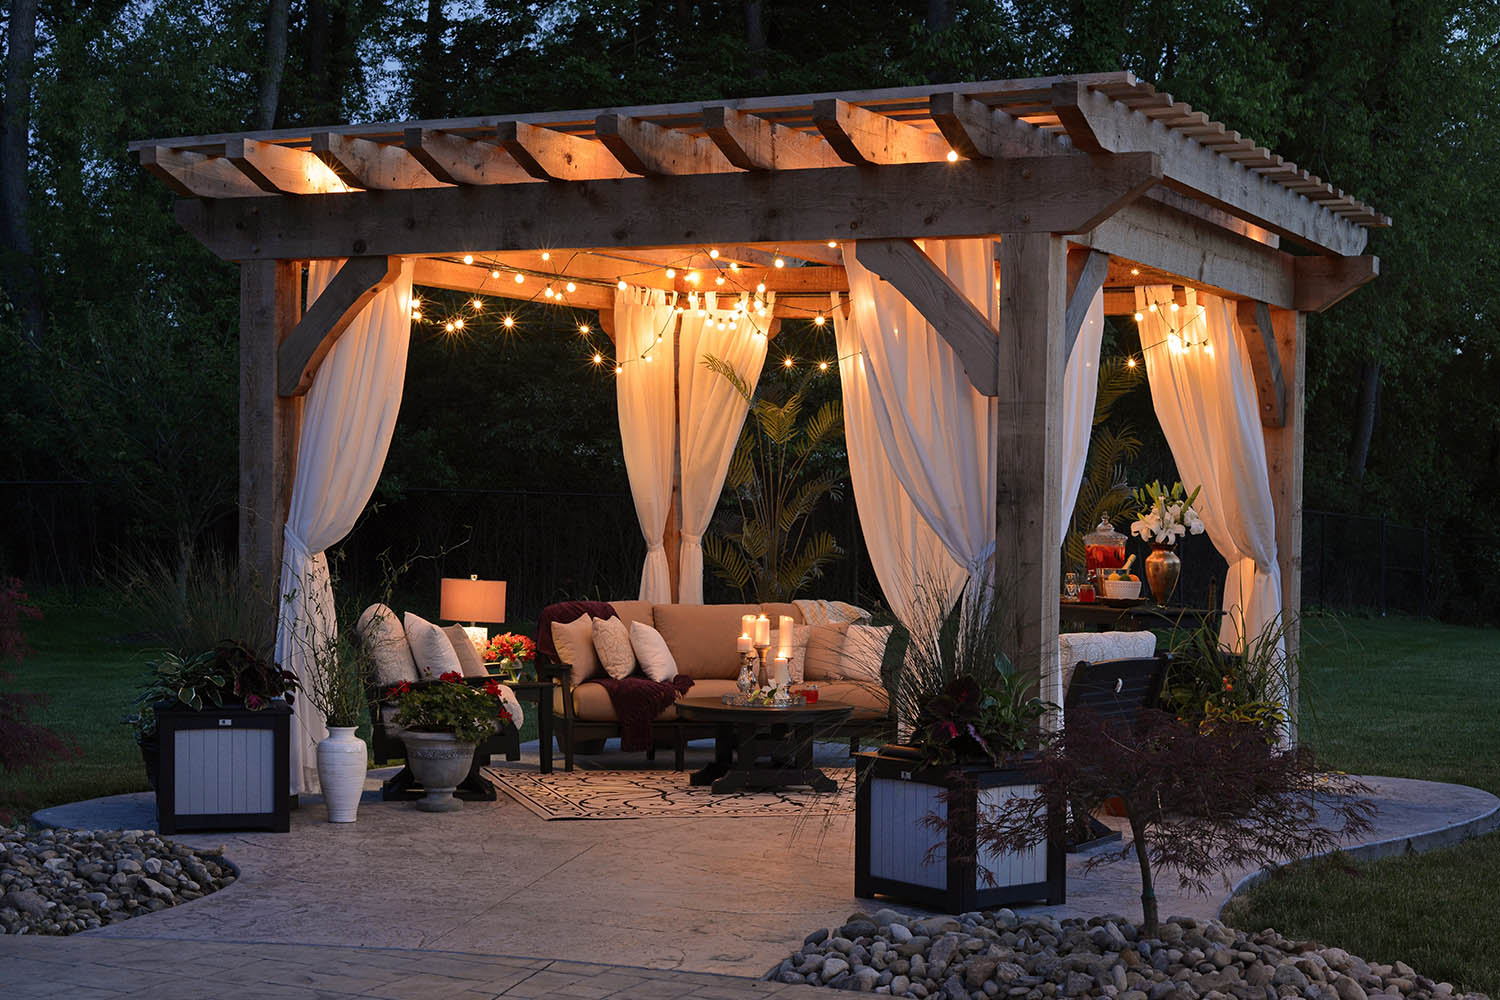 How to build a pergola: DIY pergola guide | Better Homes ...